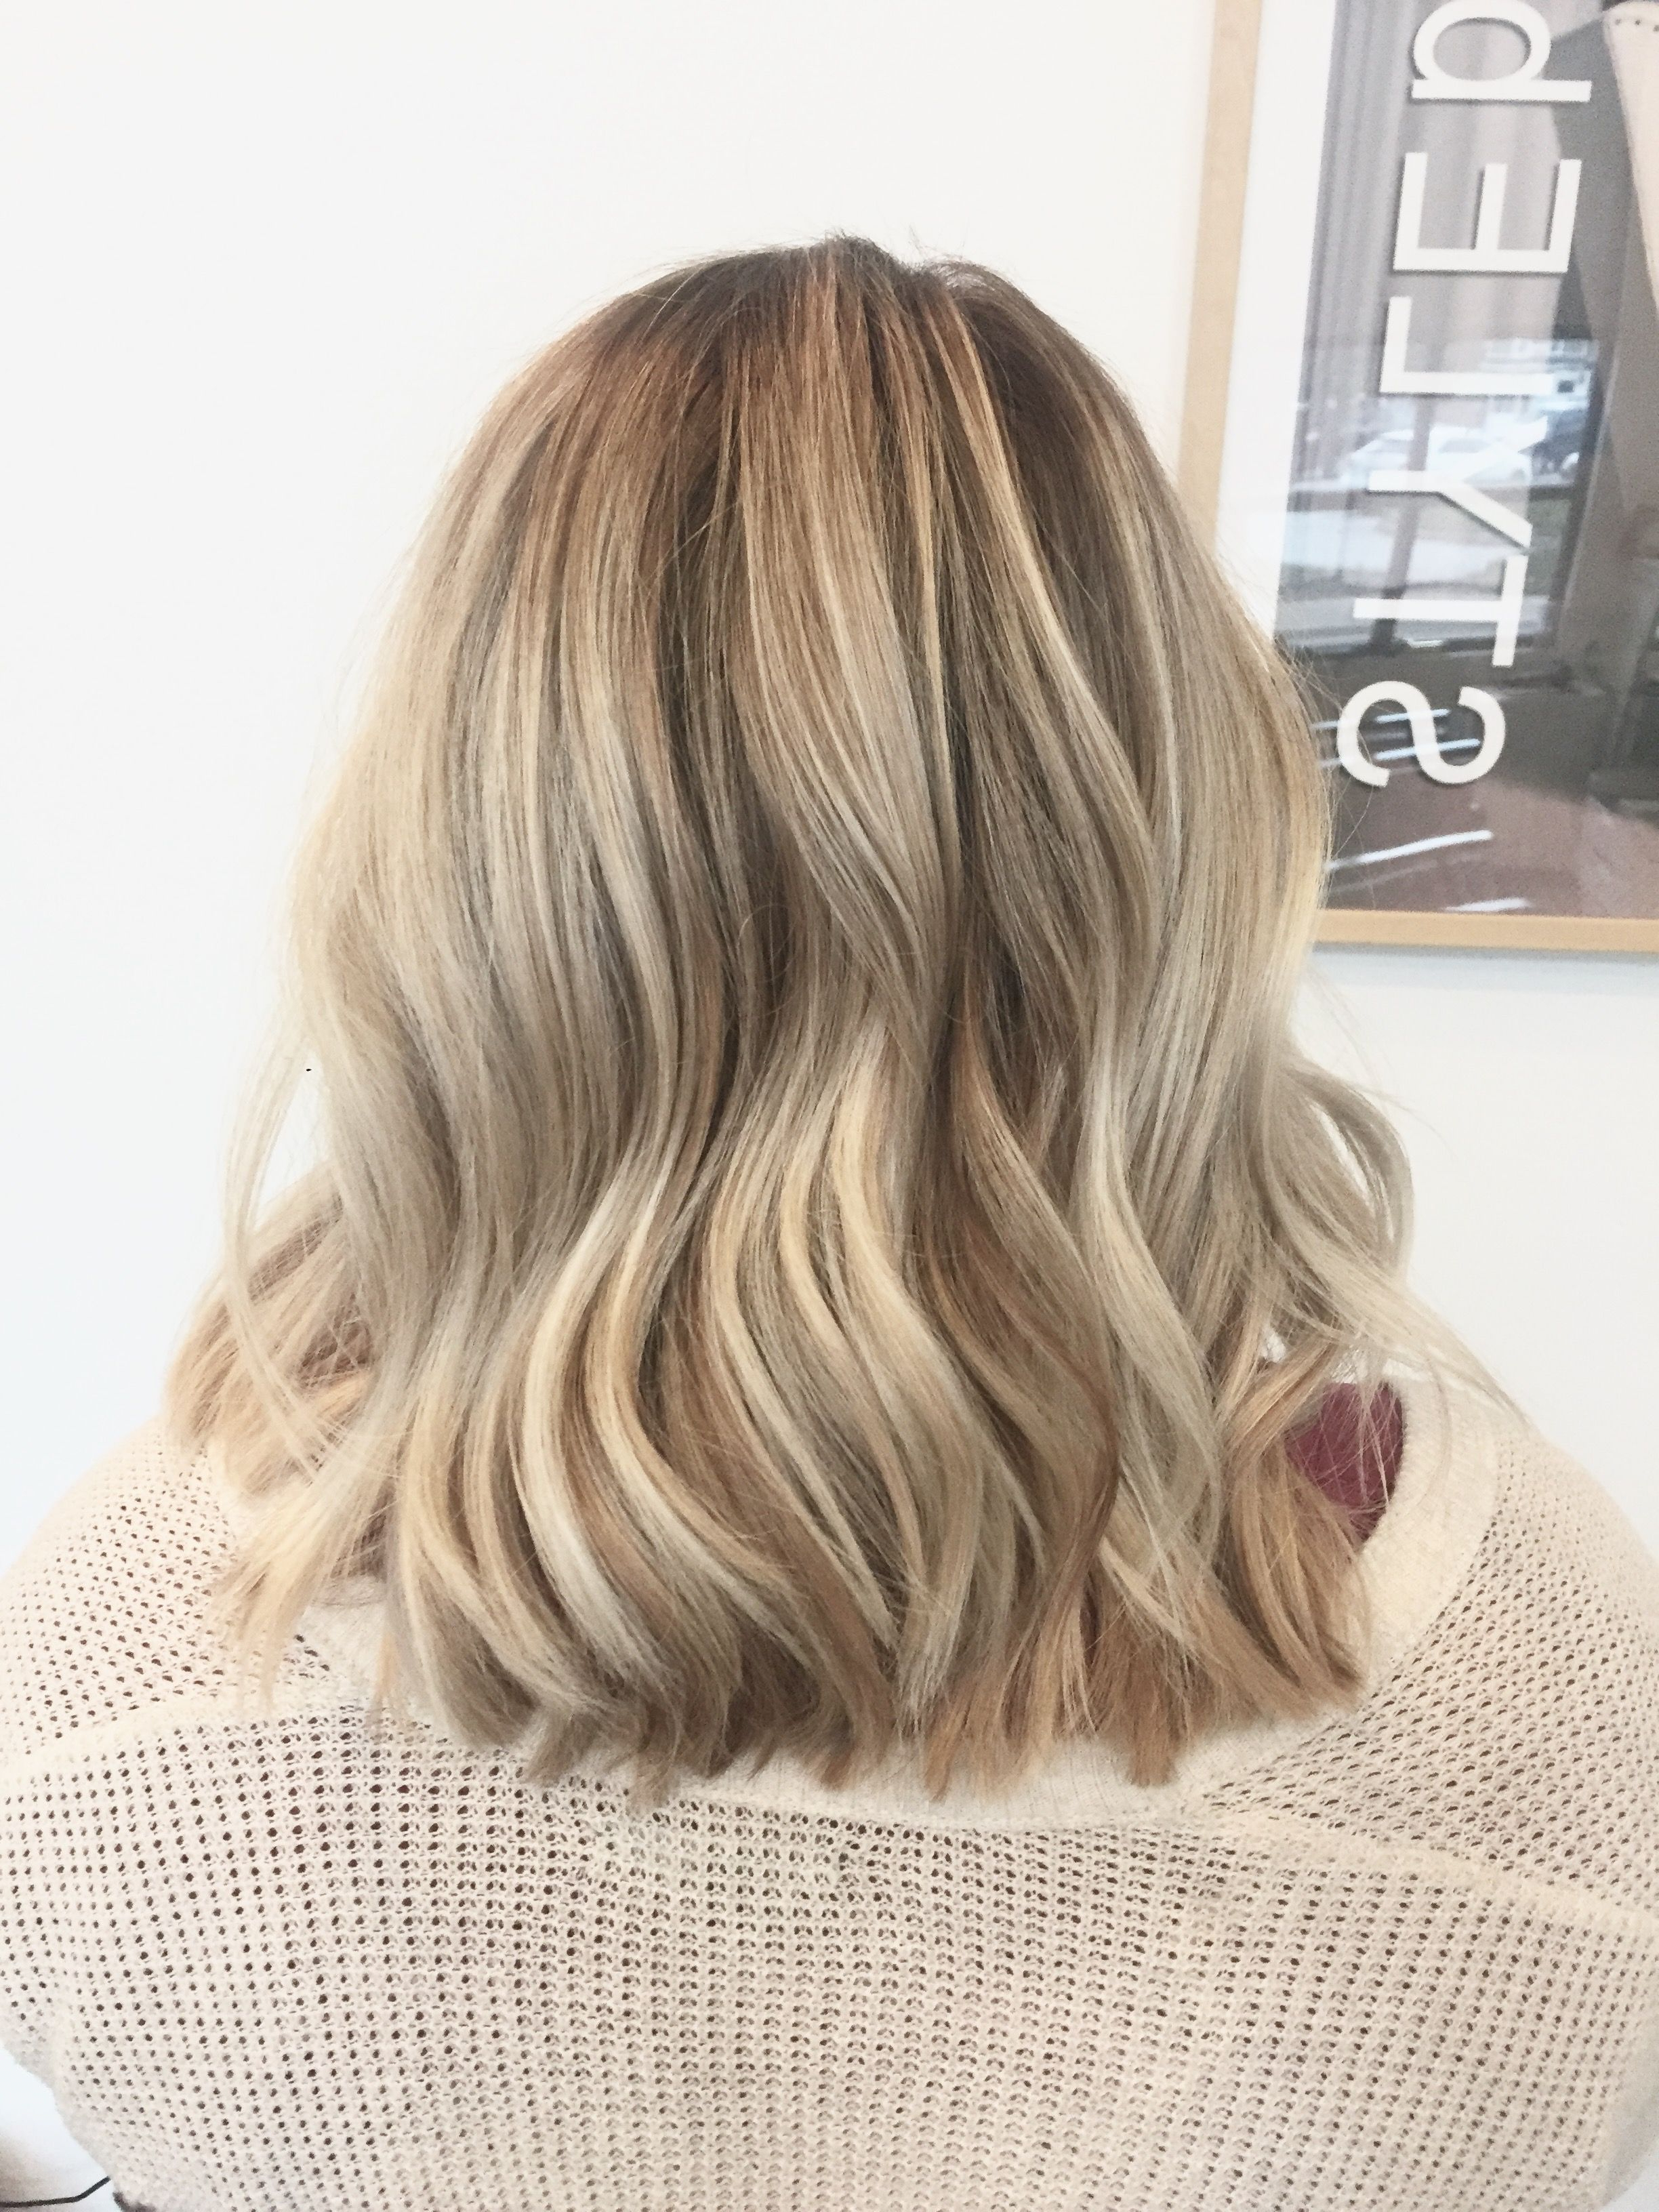 Dimensional Blonde. Balayage. Bright Blonde. Lived In Color Regarding Fashionable Choppy Dimensional Layers For Balayage Long Hairstyles (Gallery 16 of 20)